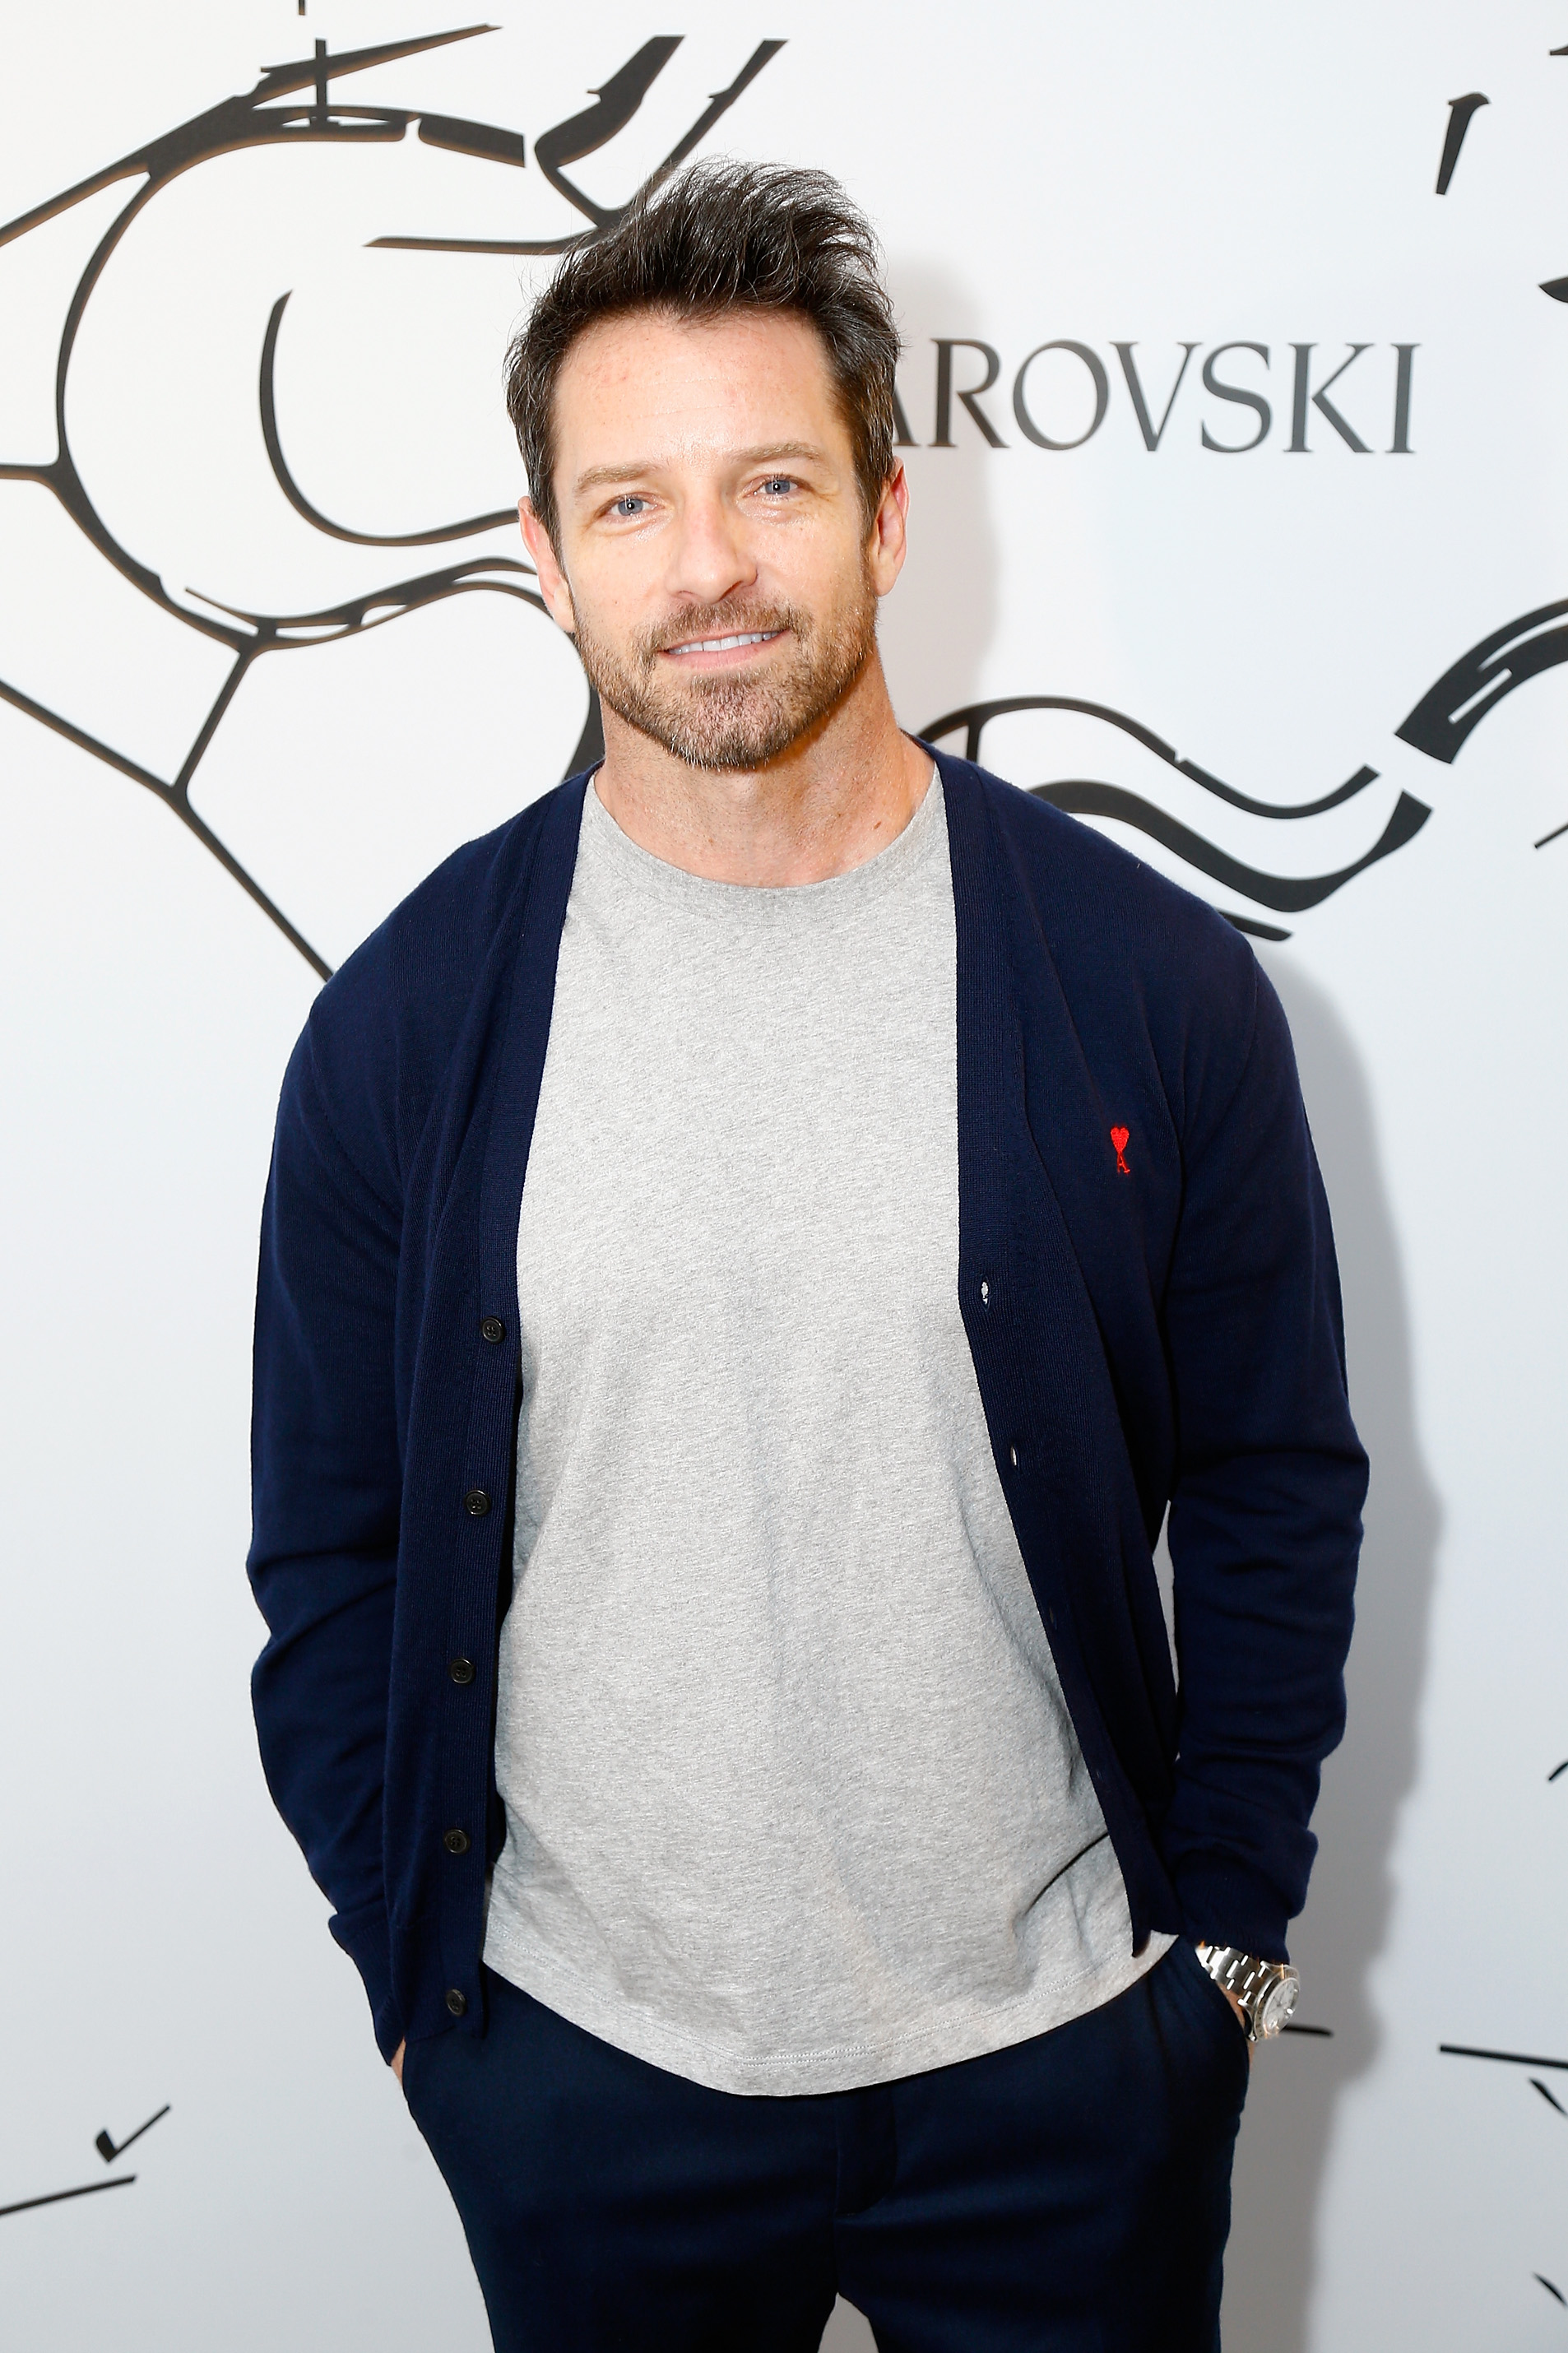 PARIS, FRANCE - JULY 03:  Ian Bohen attends the Iris Van Herpen X Swarovski Cocktail Haute Couture Fall/Winter 2017-2018 show as part of Haute Couture Paris Fashion Week on July 3, 2017 in Paris, France.  (Photo by Julien Hekimian/Getty Images) *** Local Caption *** Ian Bohen